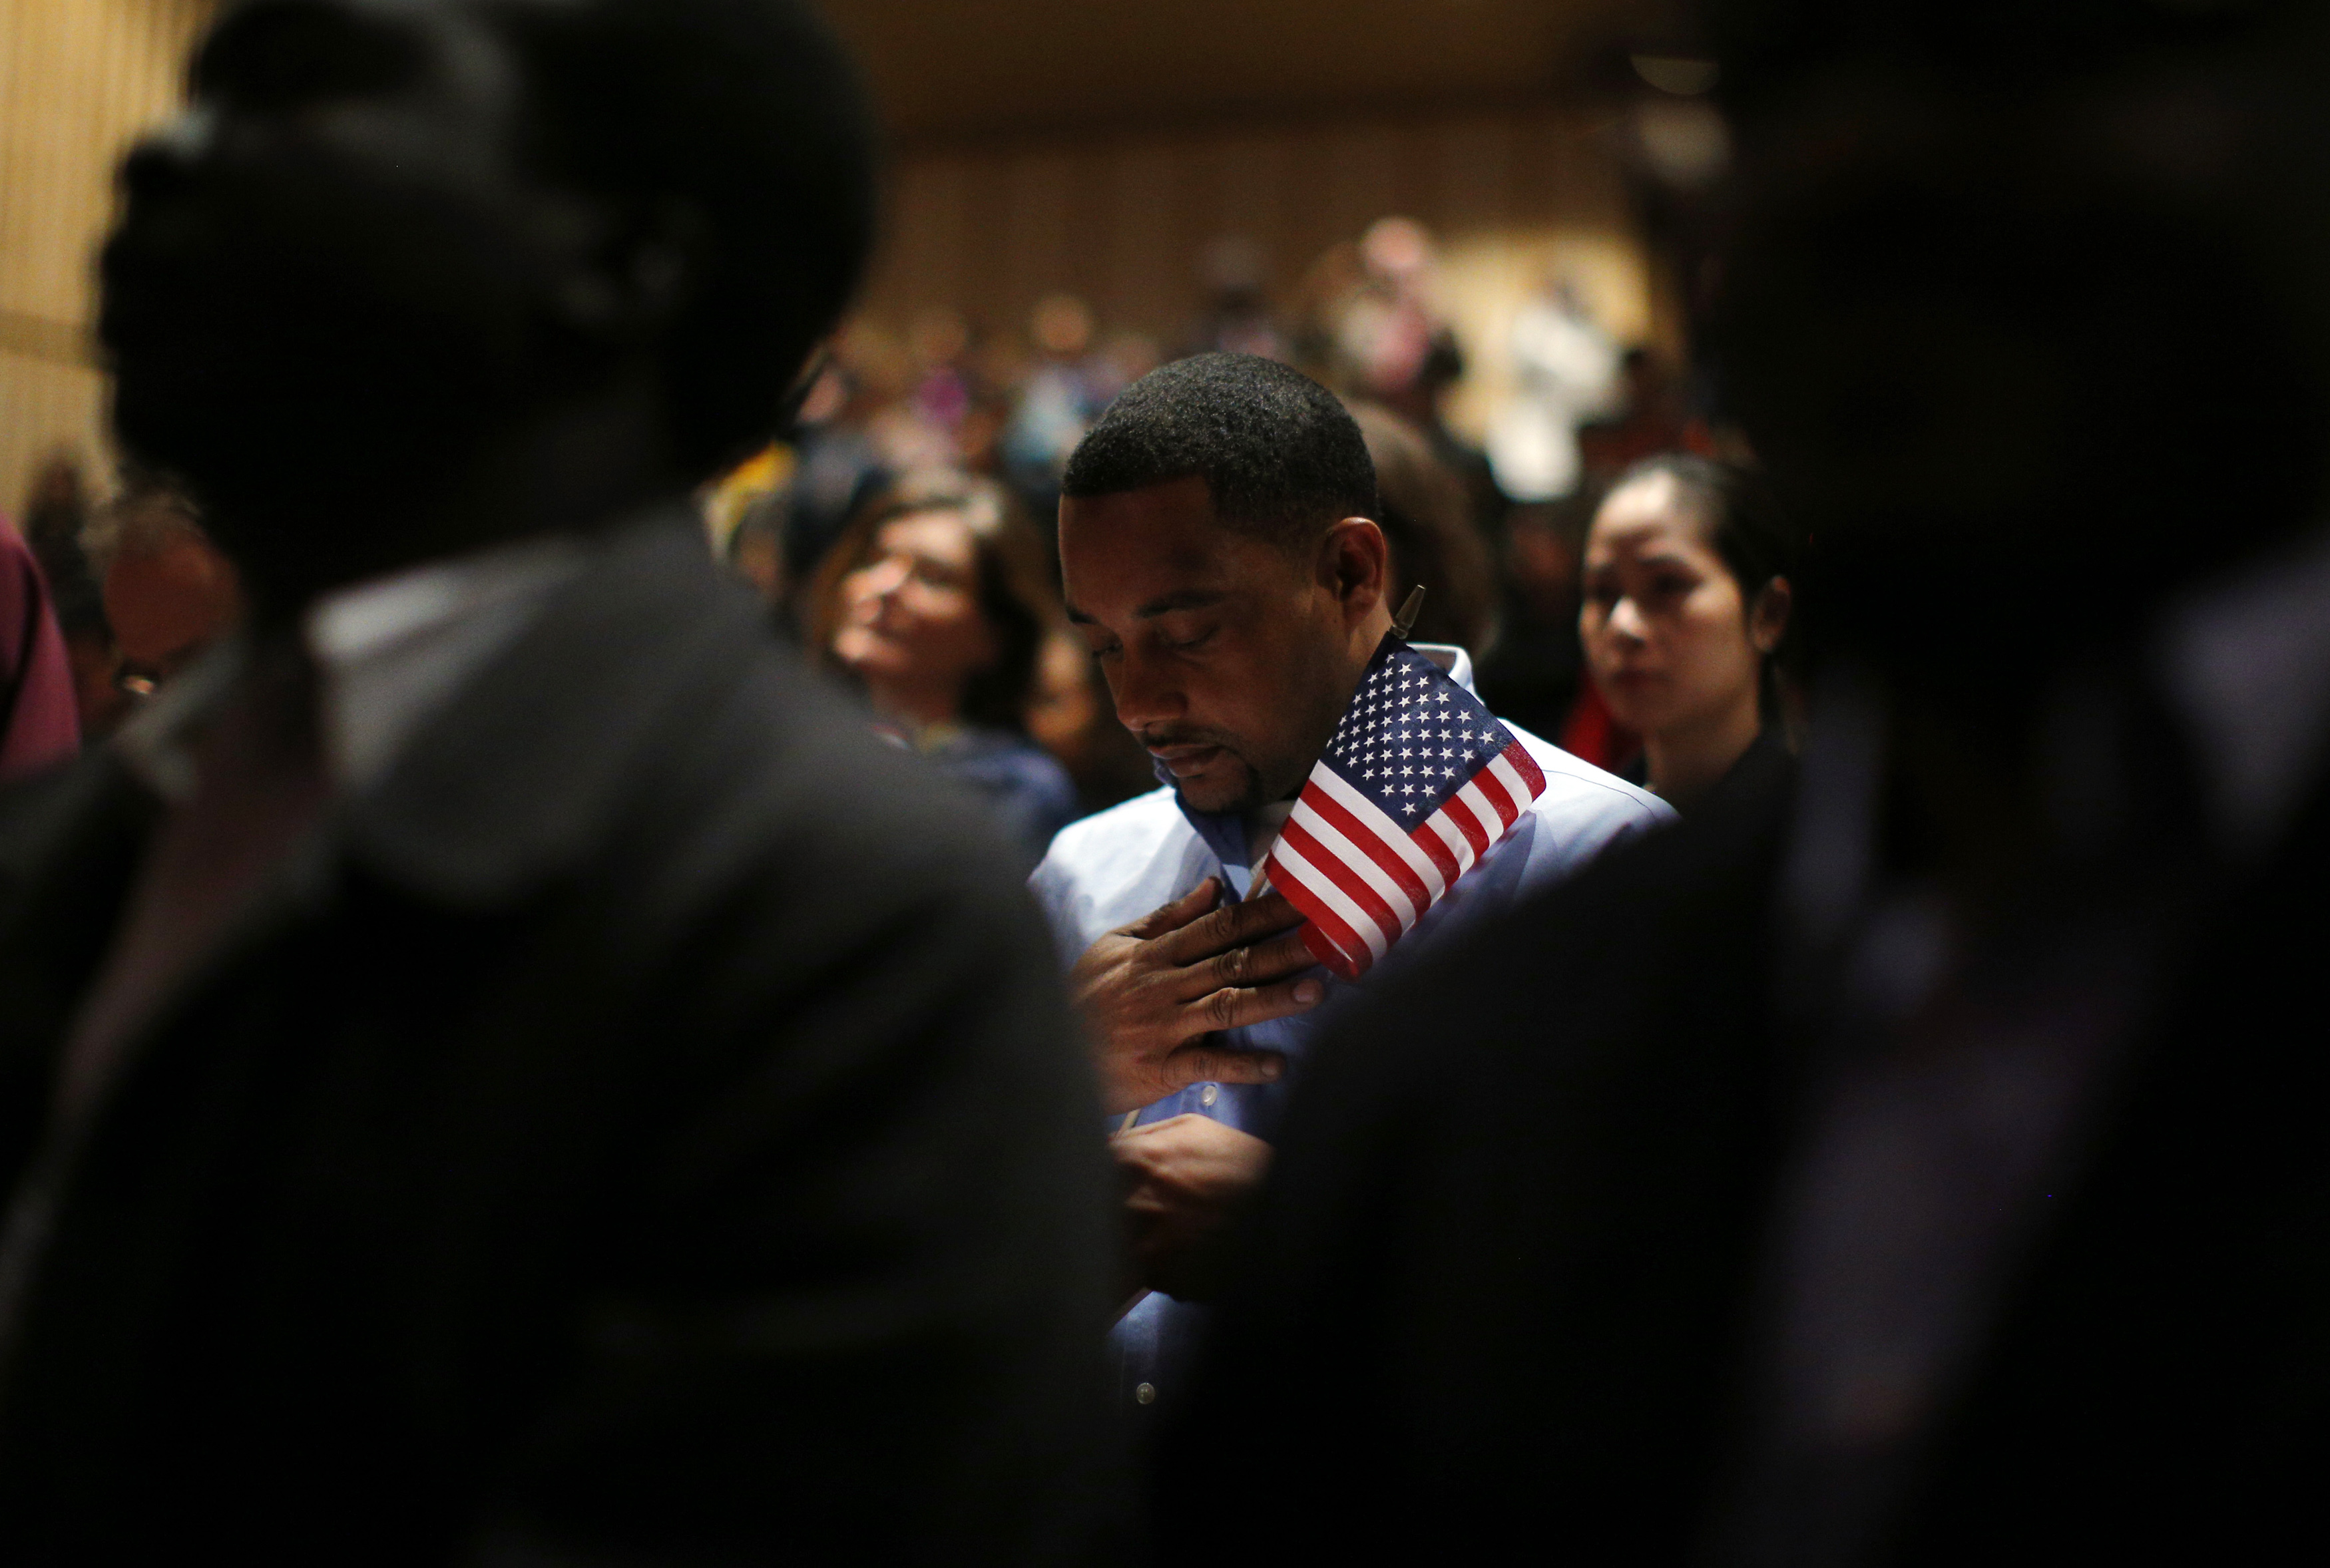 Immigrants stand for the invocation during a naturalization ceremony to become new U.S. citizens in Boston, 2013. Massachusetts is home to thousands of refugees, but the mayor of Springfield, Mass. says refugees are draining his city's resources.